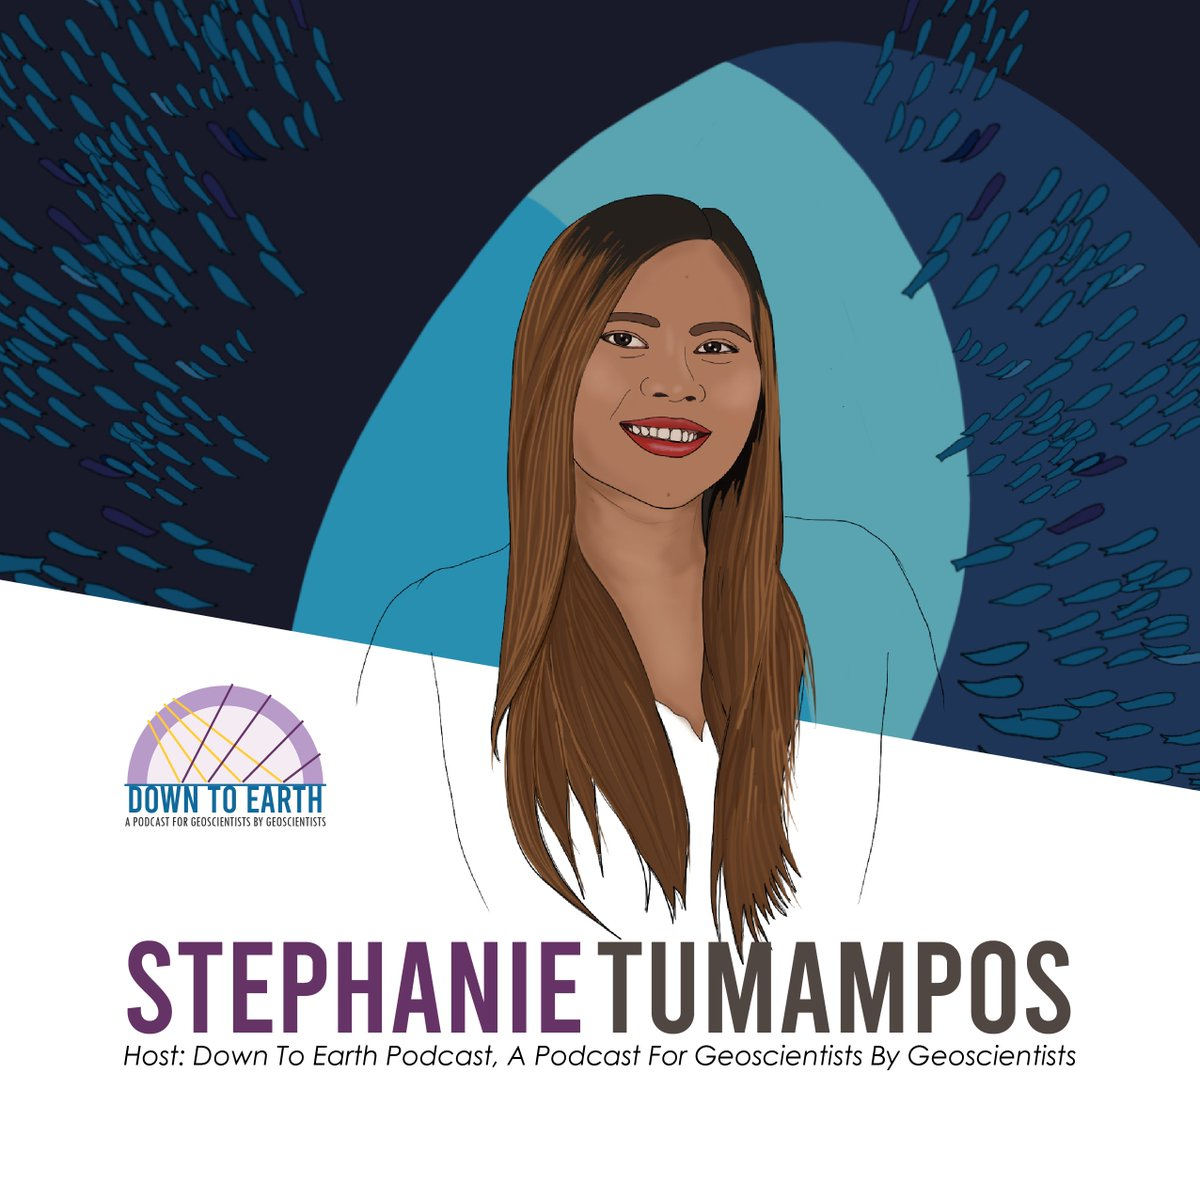 Our #podcast host for #DownToEarth is @stephtumampos. She is a #witty #passionate & #charming conversationalist with an excellent knowledge of #geoscience. She is a joint masters #graduatestudent at the @PLUS_RESEARCH and @UBS_universite and the student representative of @MSc_CDE